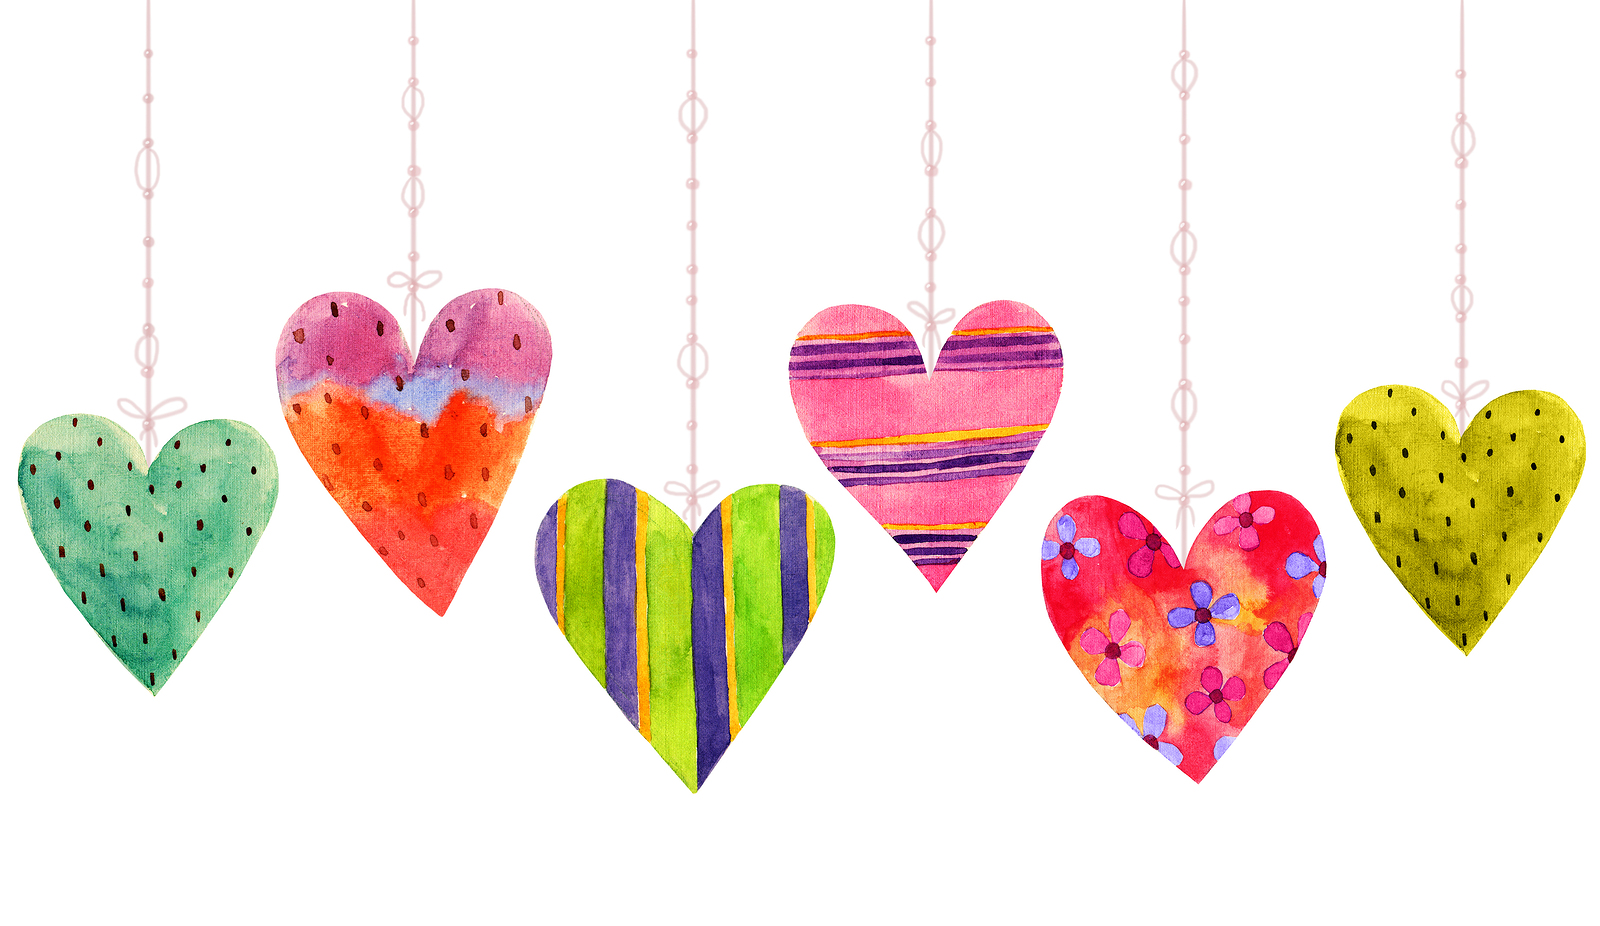 The heart symbol is powerful and healing for our energetic body